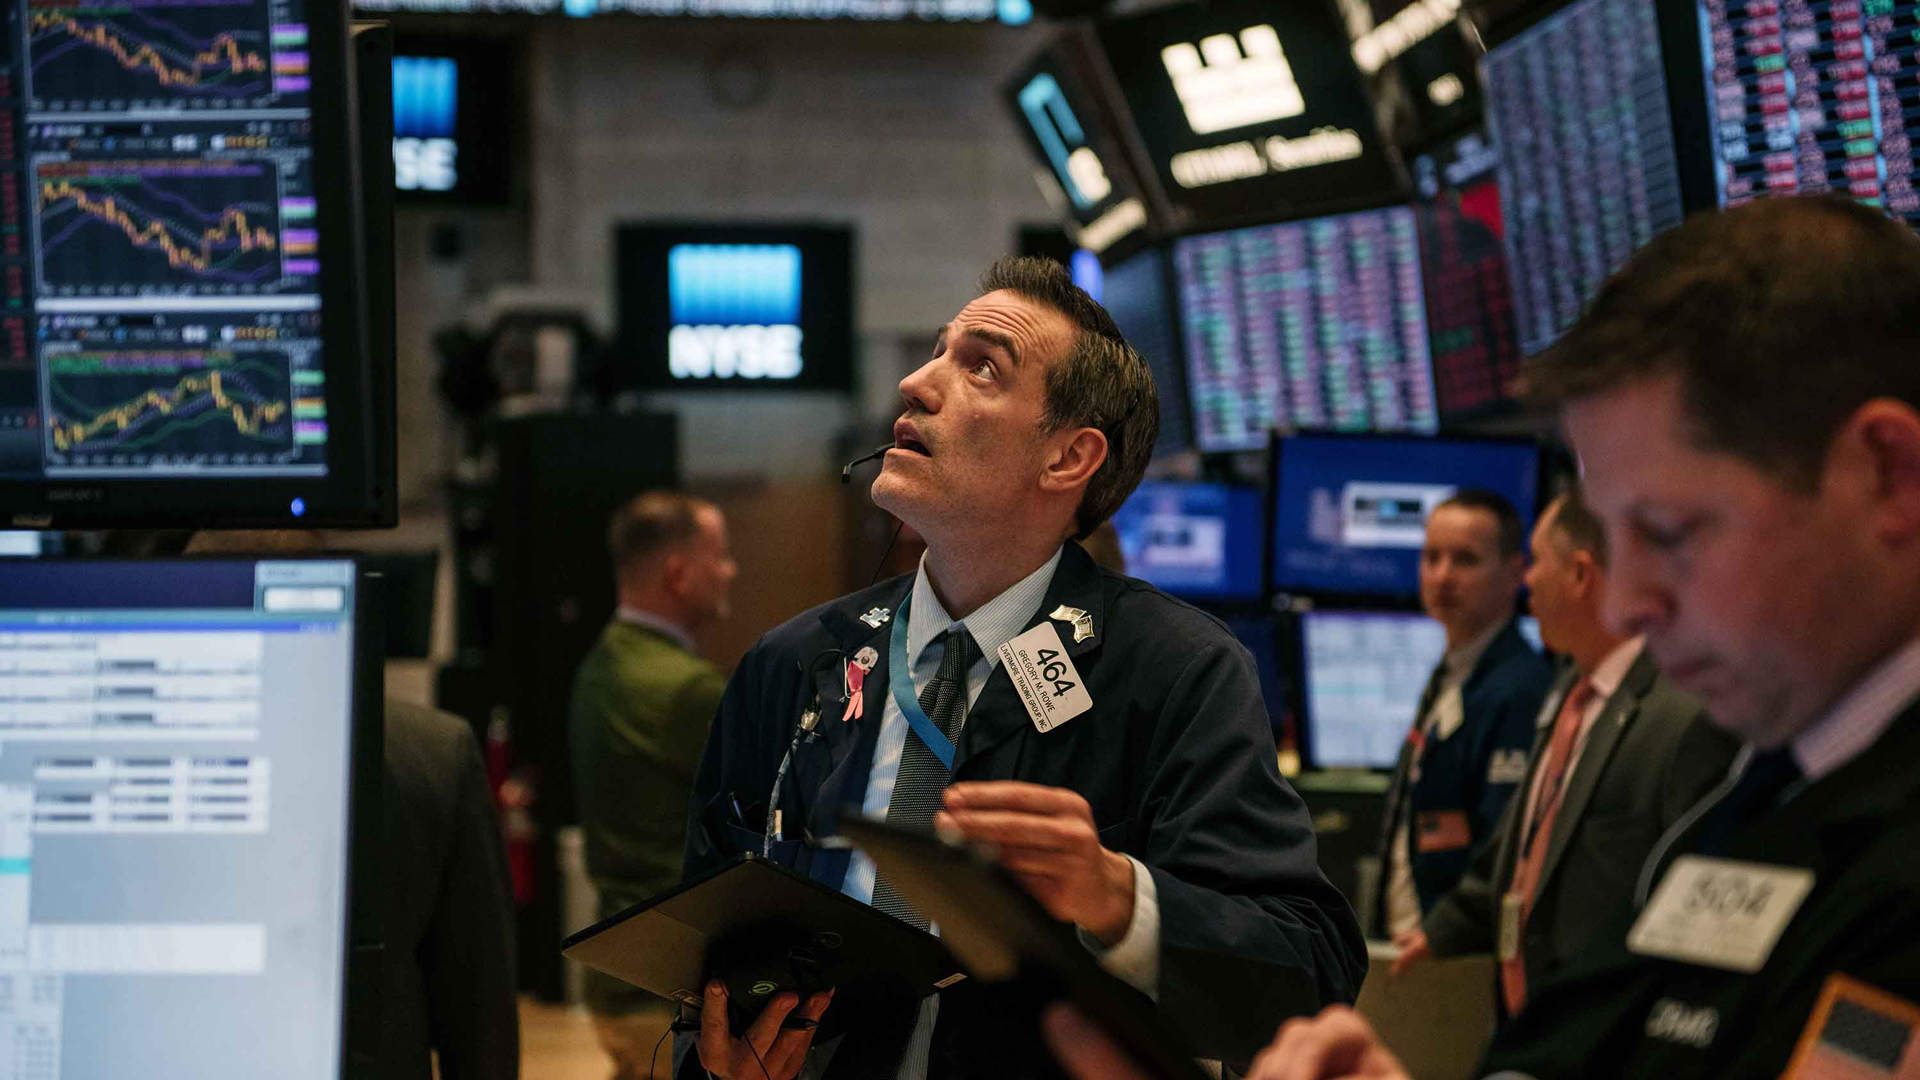 Traders work through the closing minutes of trading Tuesday on the New York Stock Exchange floor on Feb. 25, 2020, in New York City. (Scott Heins/Getty Images)